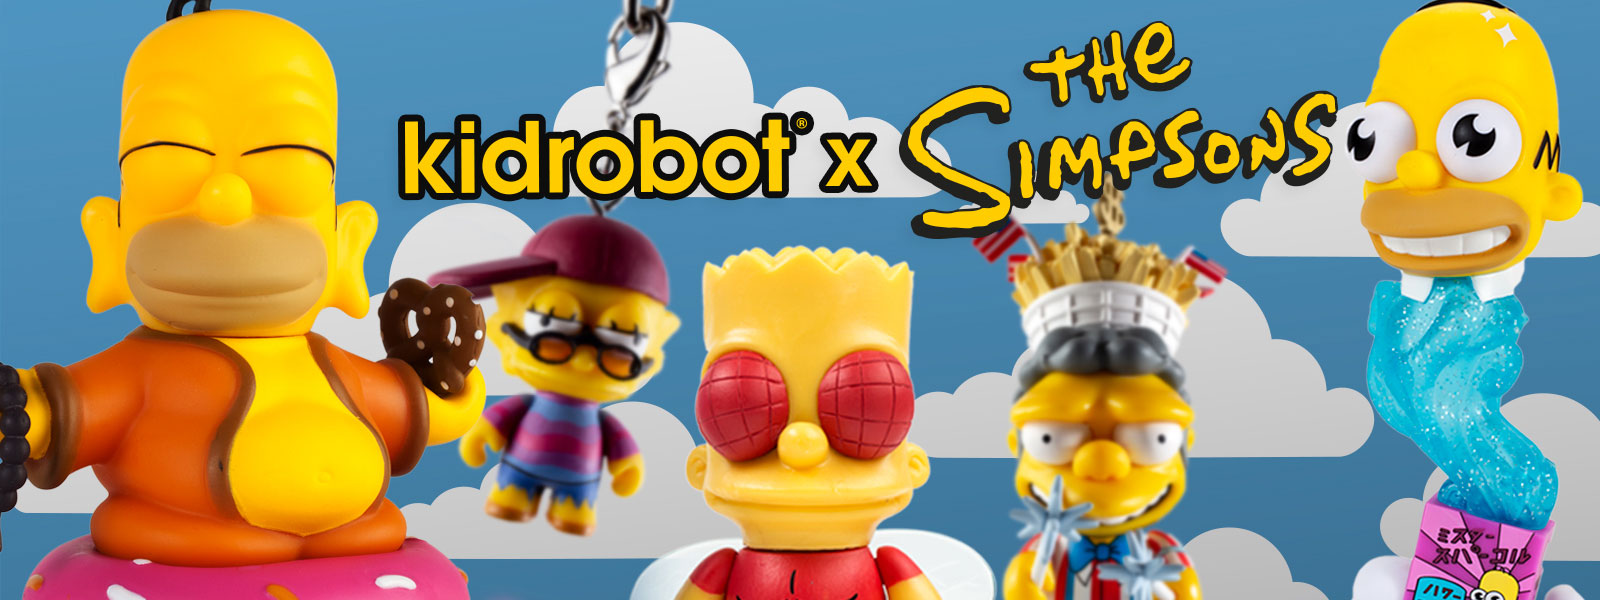 The Simpsons Toys Figures Collectibles by Kidrobot